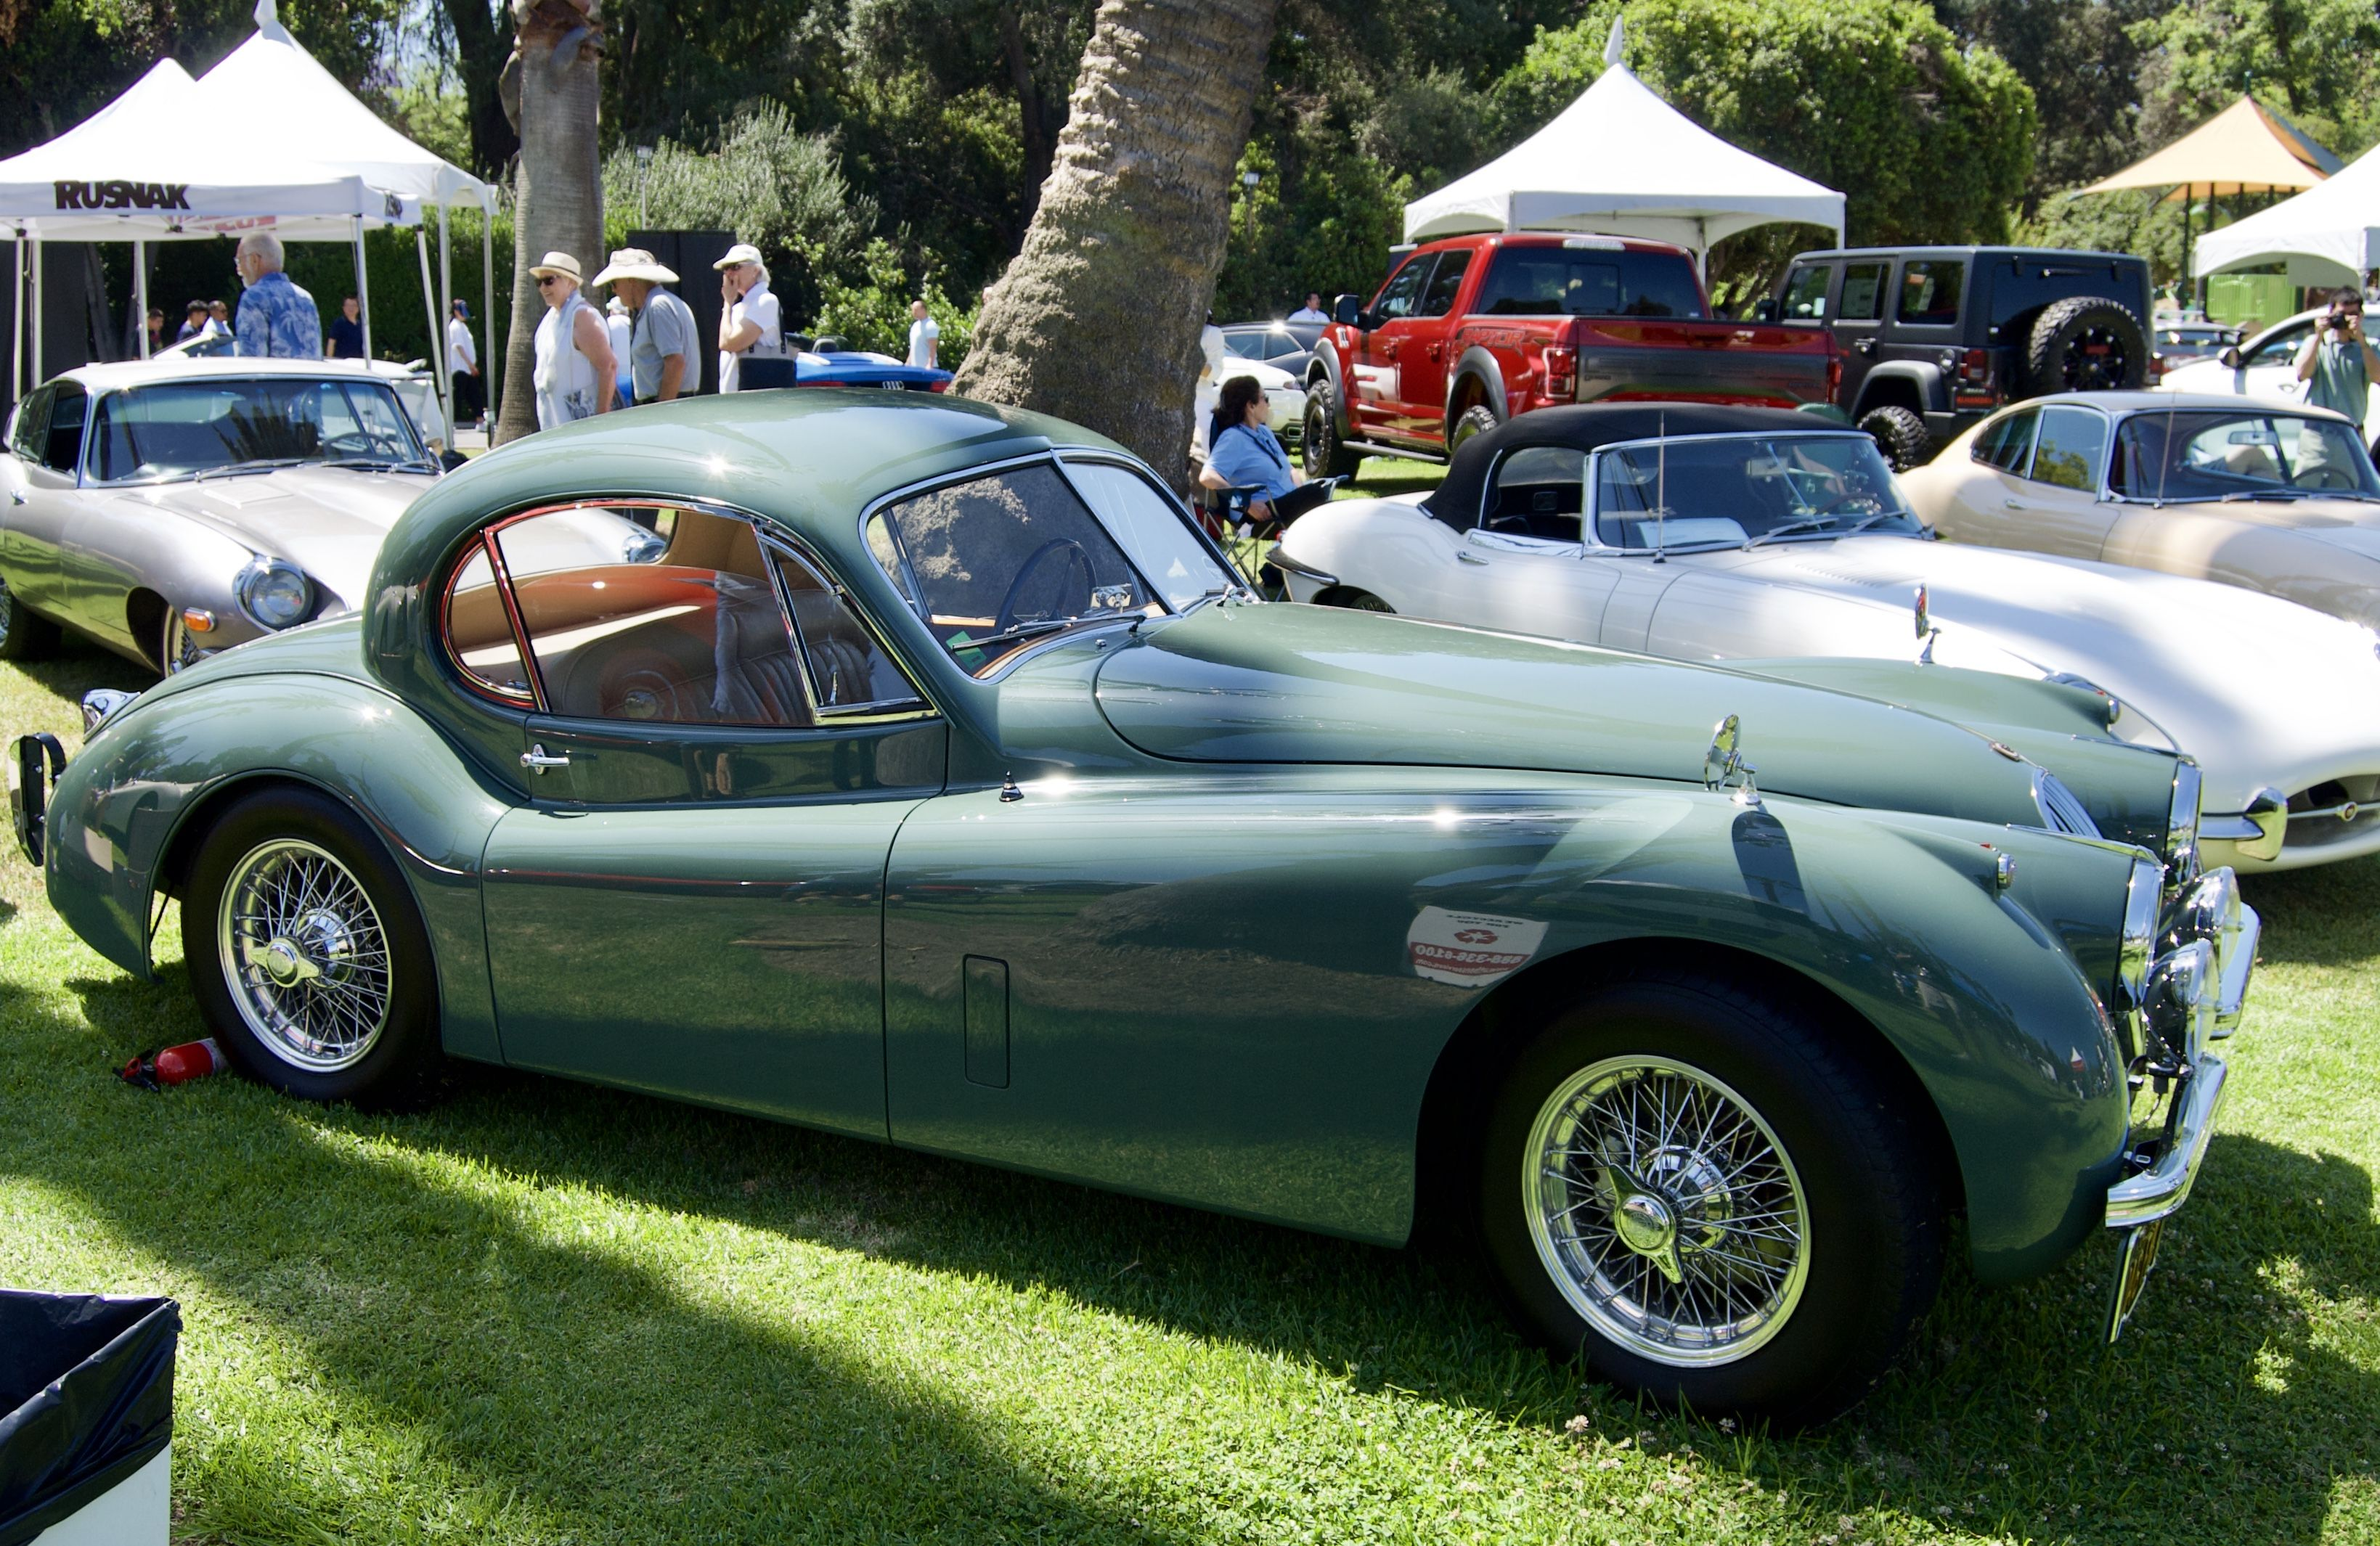 1952 Jaguar Xk120 Fhc Suede Green 2nd Place In Class S 2 Sanmarinomotorclassic2018 Jaguar Xk120 Jaguar Xk Jaguar